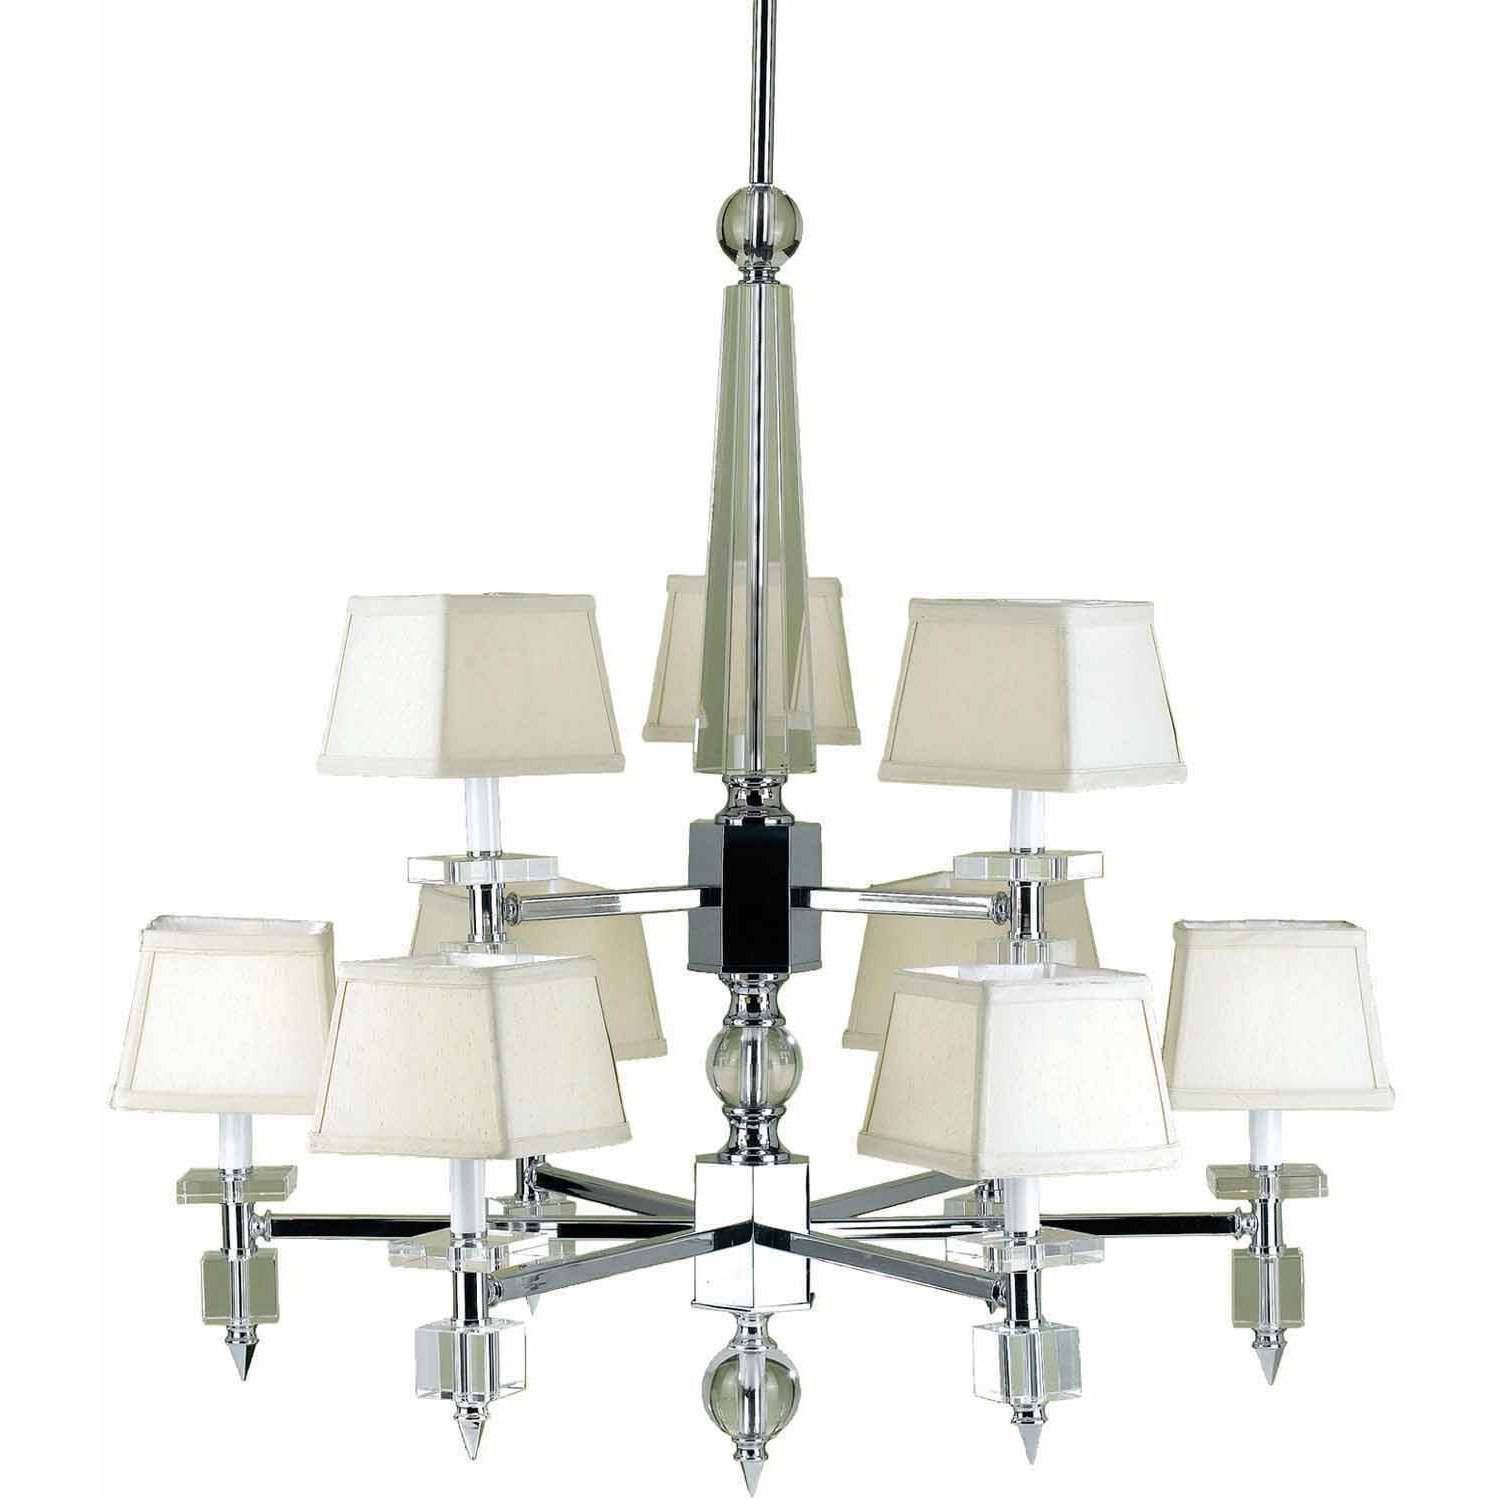 AF Lighting 6761 Nine-Light Chandelier with Cream Shades